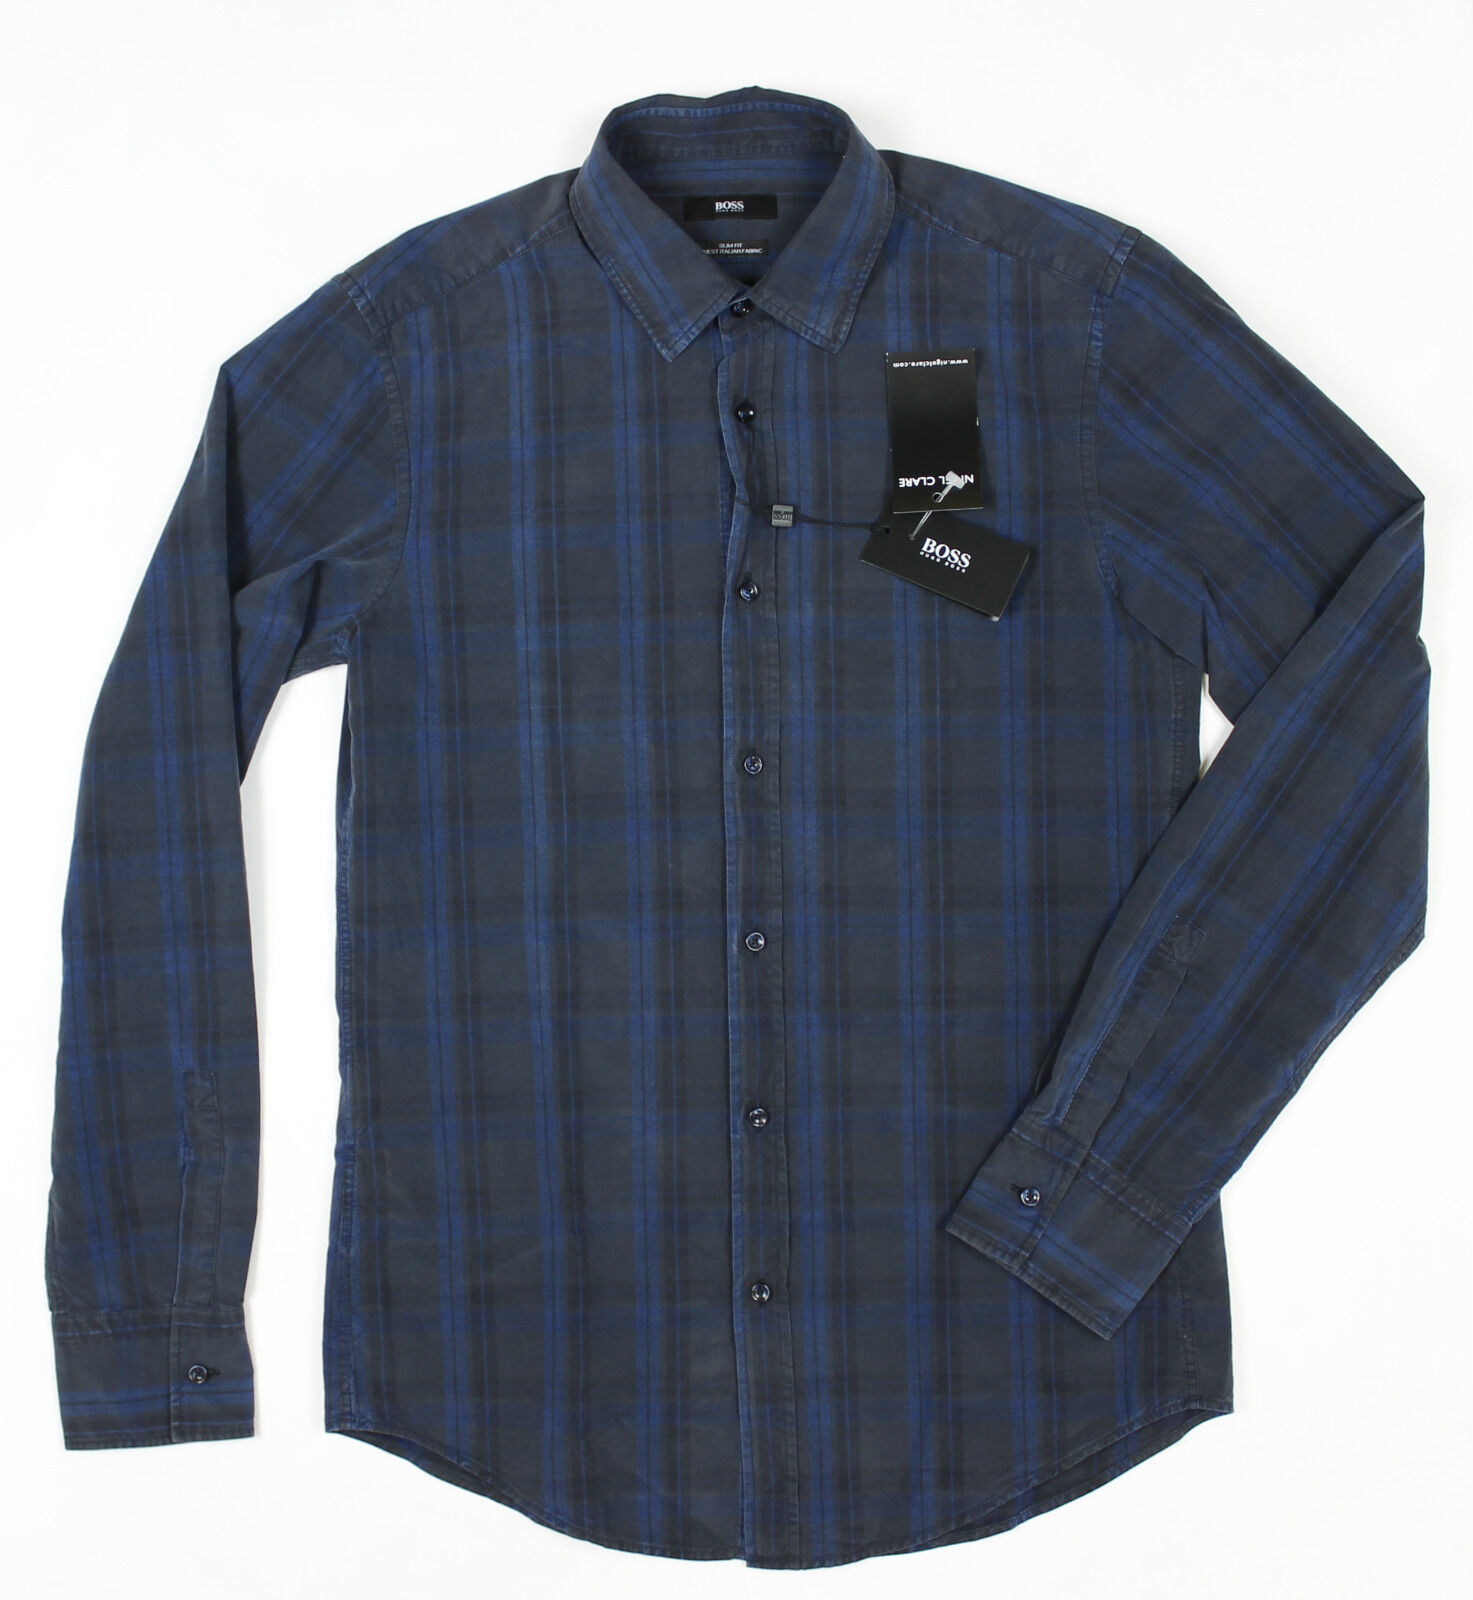 Hugo Boss - Ronny Slim Fit Shirt - Size S NEW WITH TAGS RRP